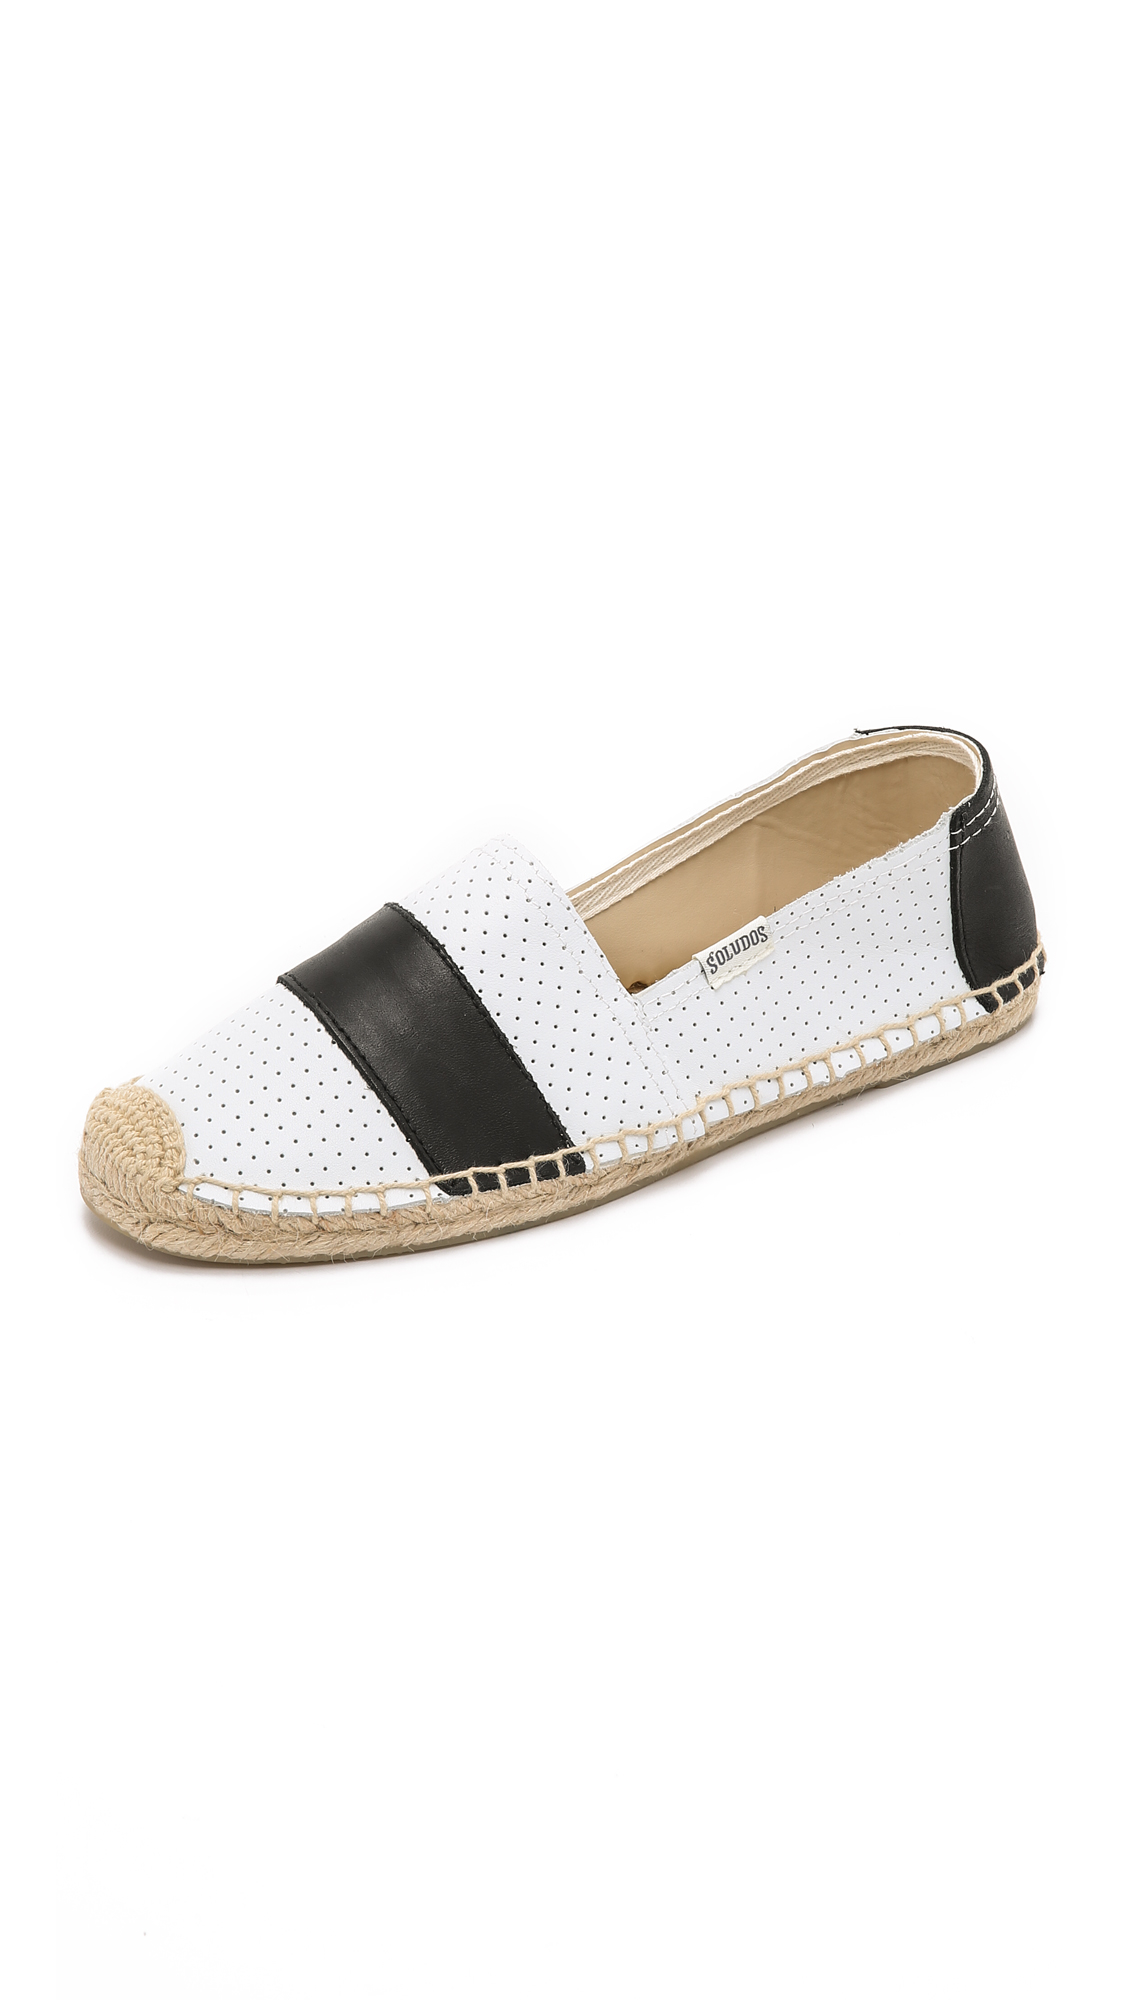 7ebb402f0 Soludos Original Leather Barca Perforated Espadrilles in White - Lyst